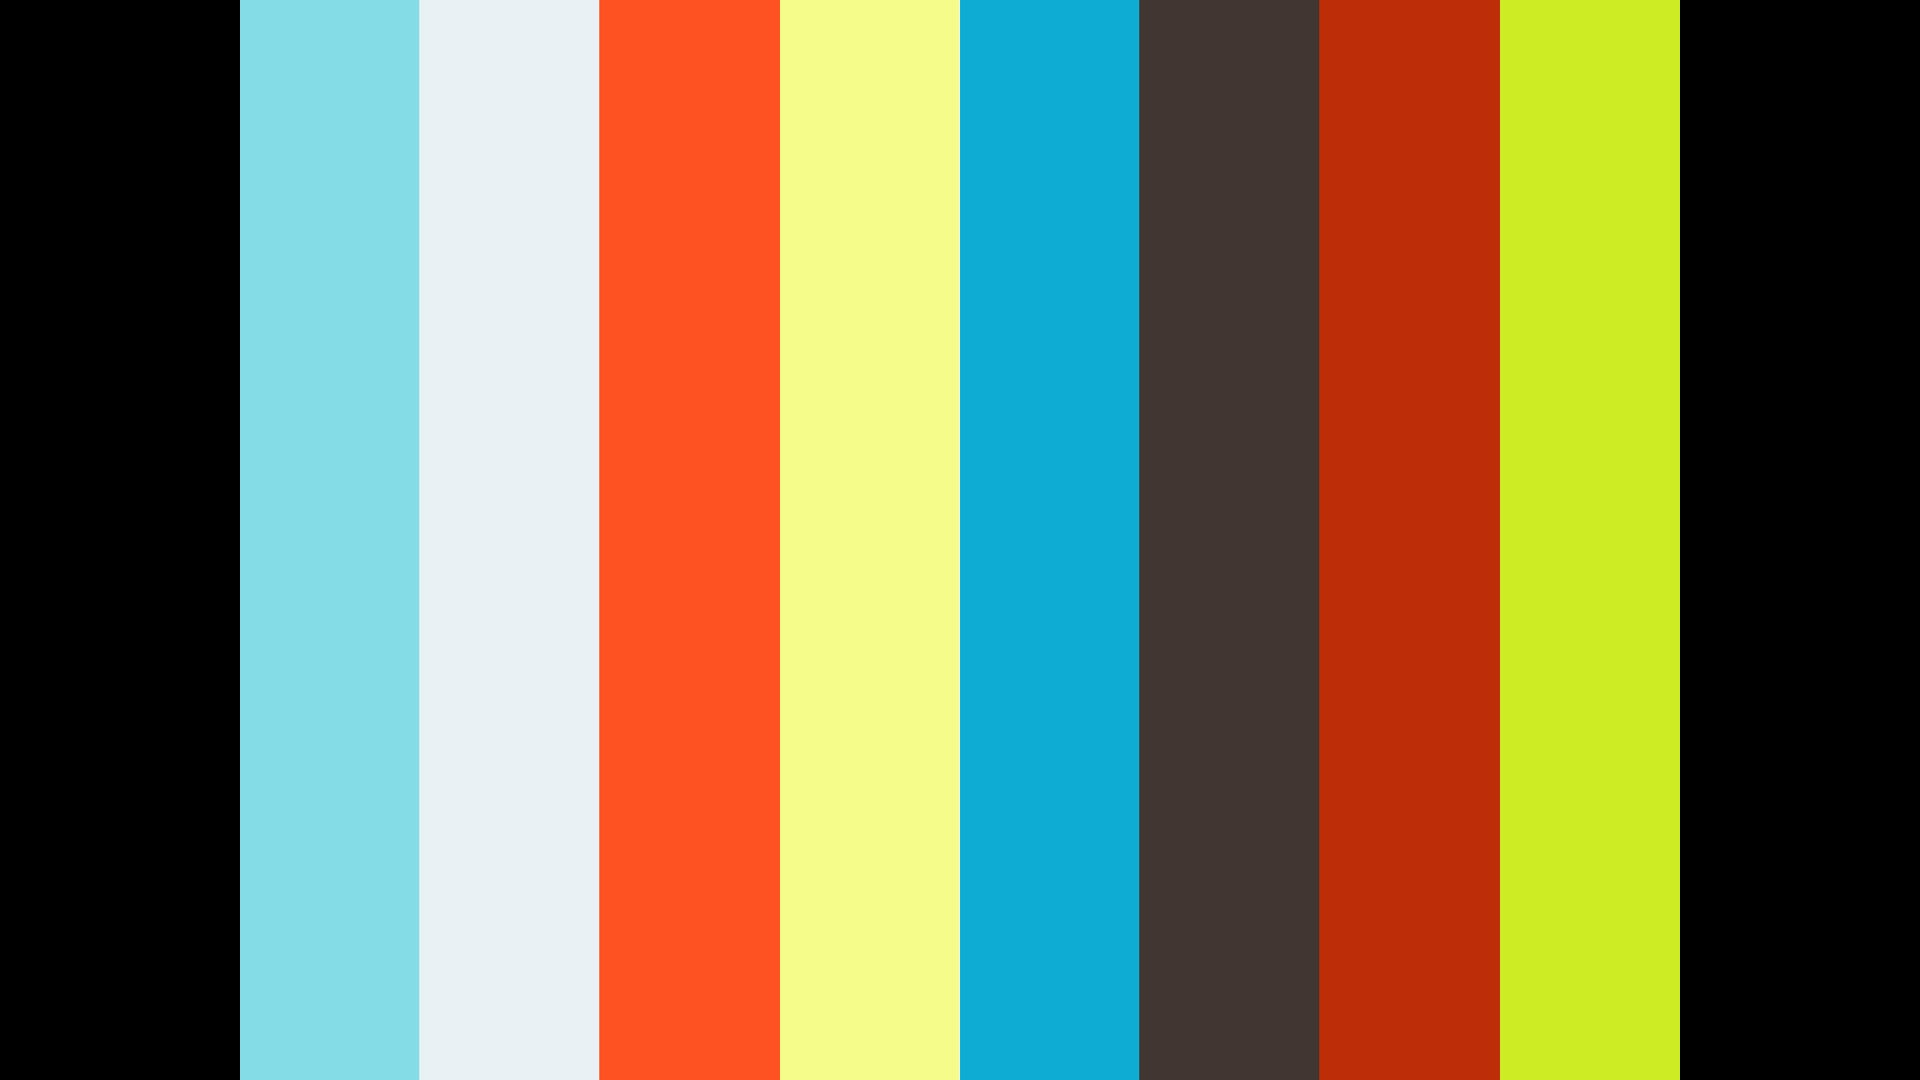 Iagulli: What Makes Trinity Special